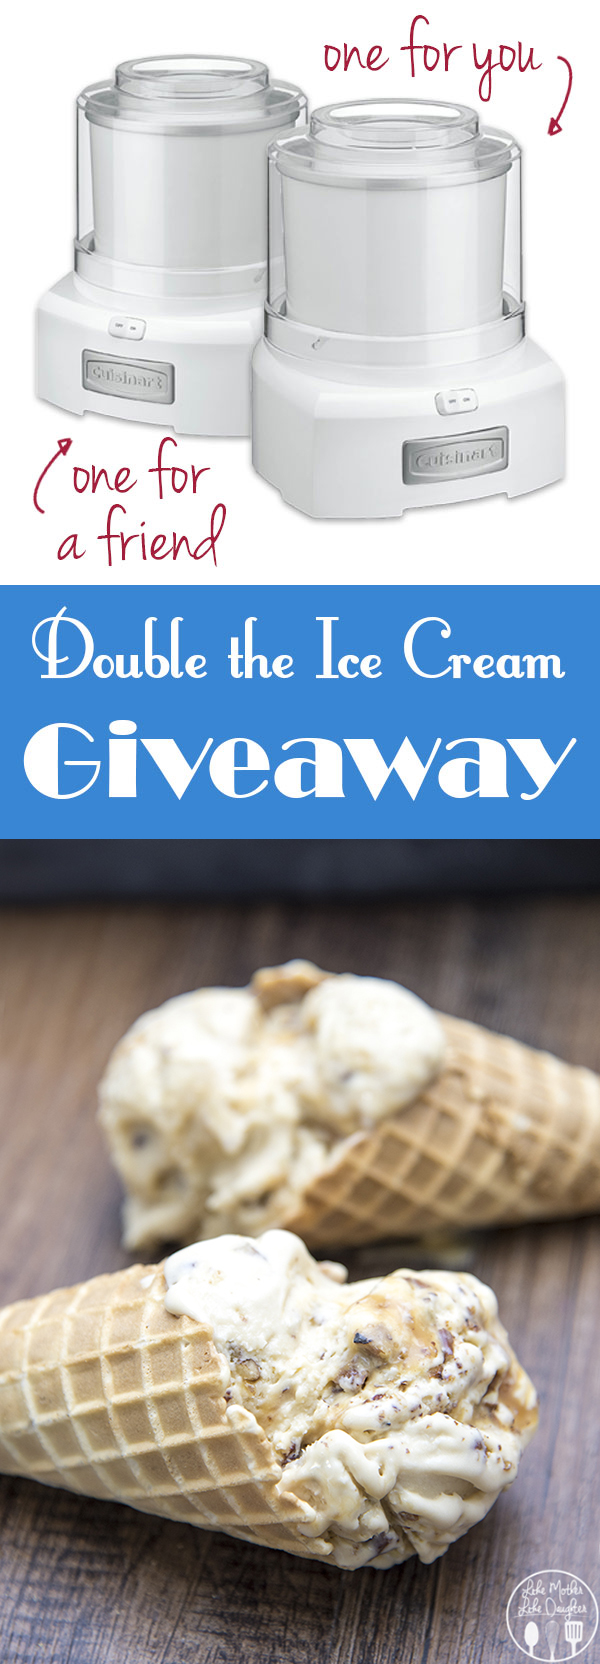 Salted Caramel Pecan Ice Cream and a giveaway! Win an ice cream maker for you and a friend!